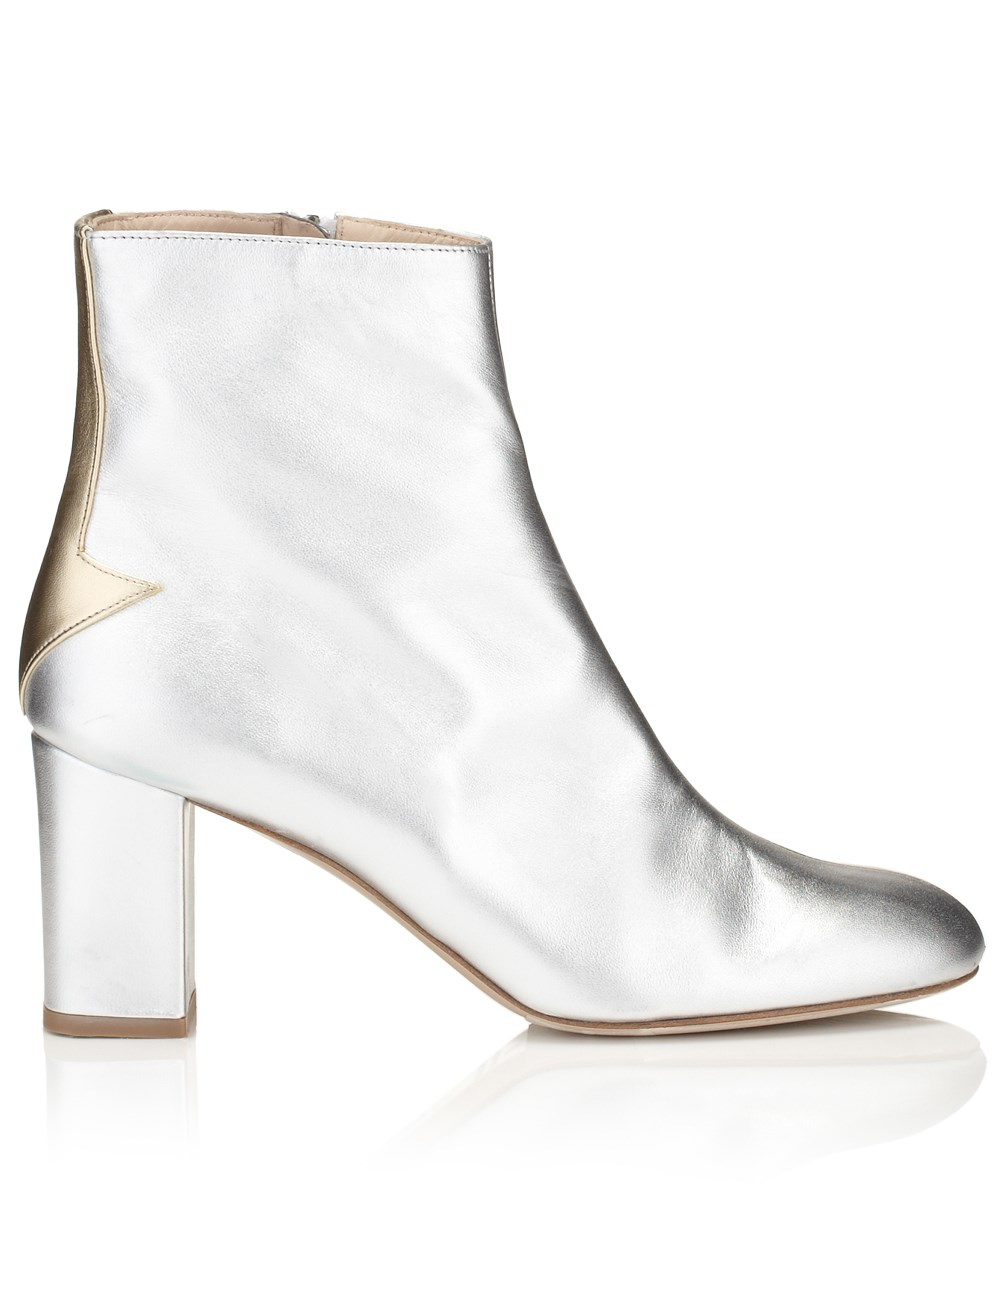 Camilla elphick Silver Lining Ankle Boots in Metallic | Lyst